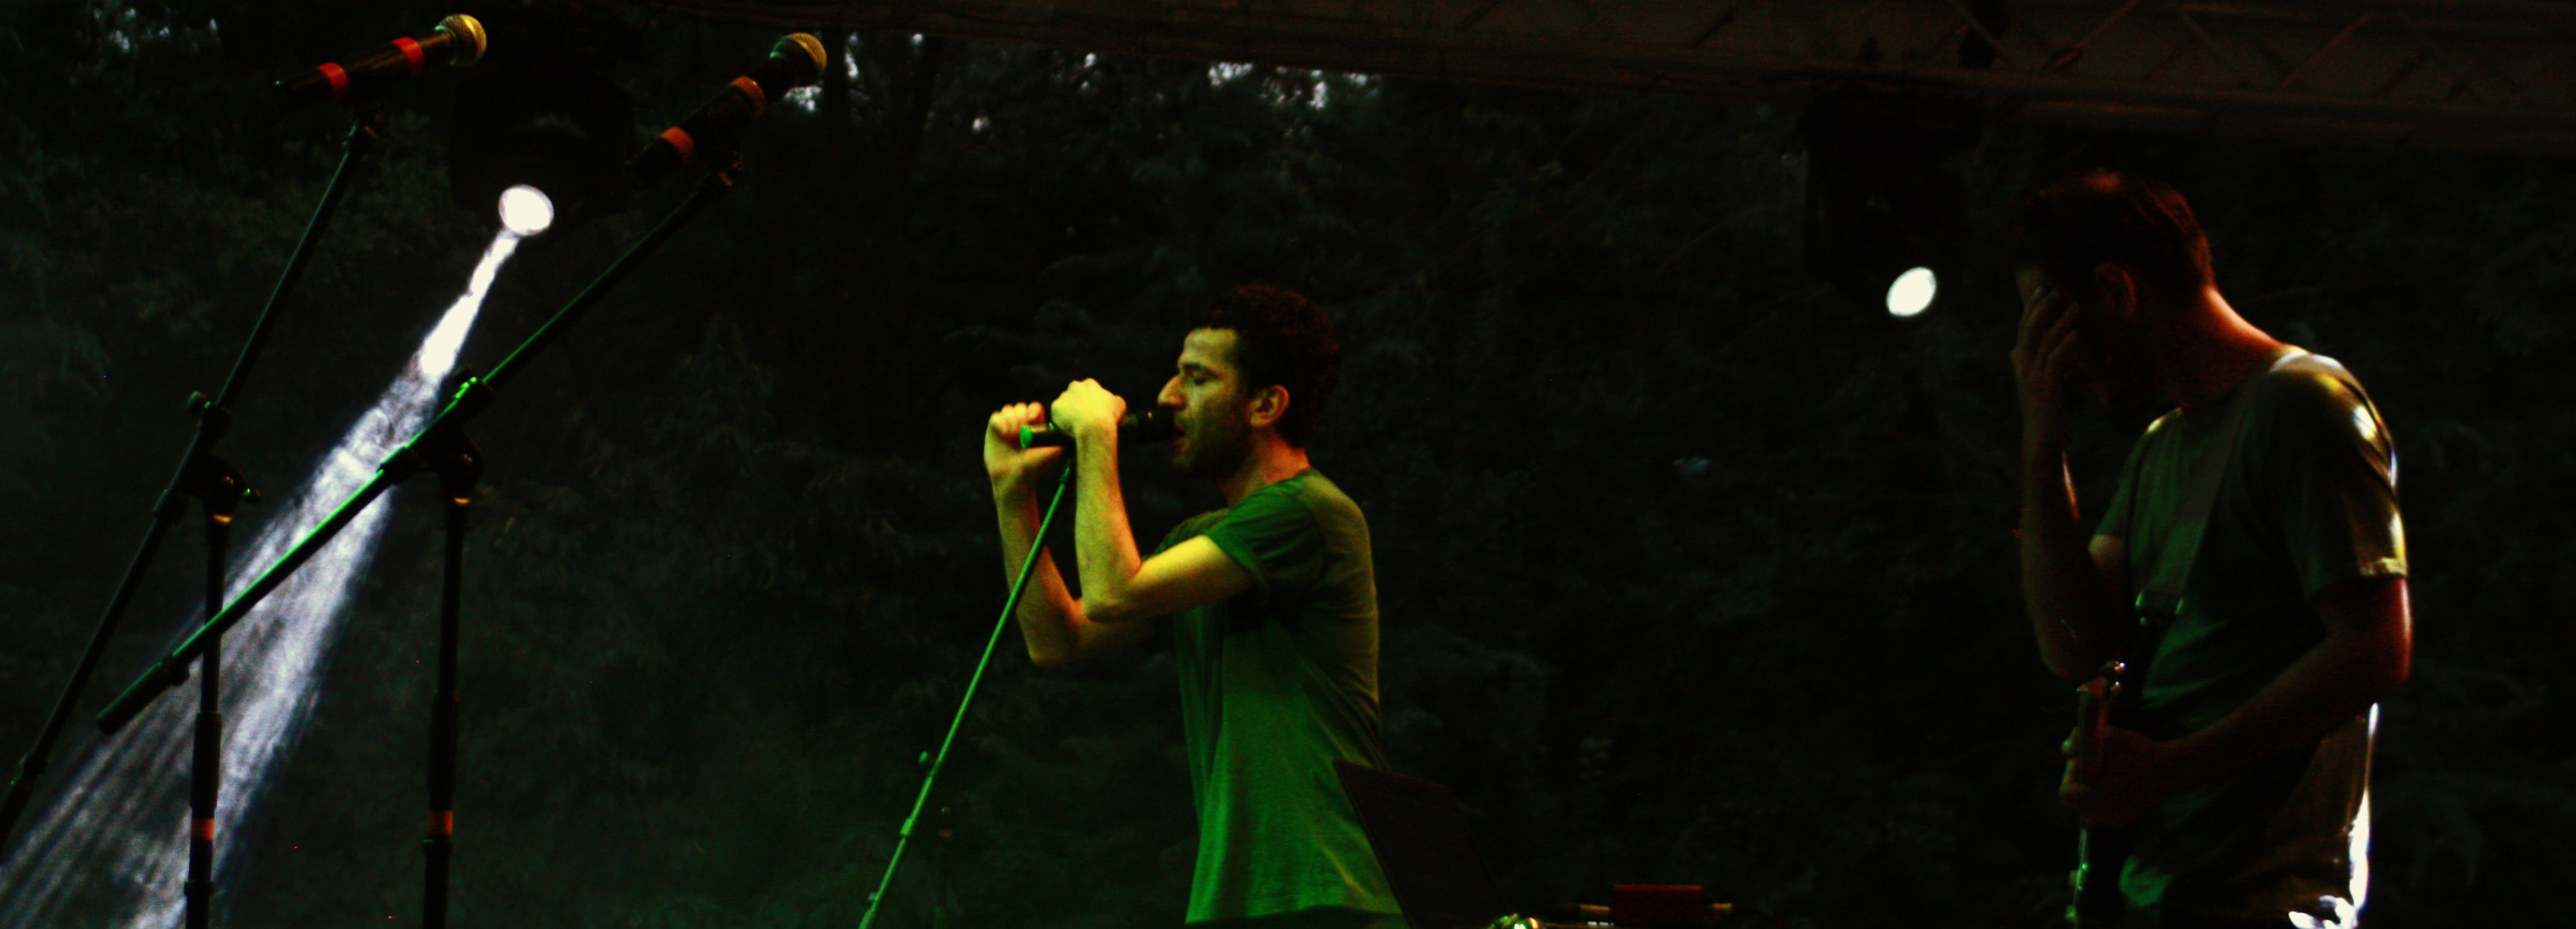 Man Holding Microphone on Stage